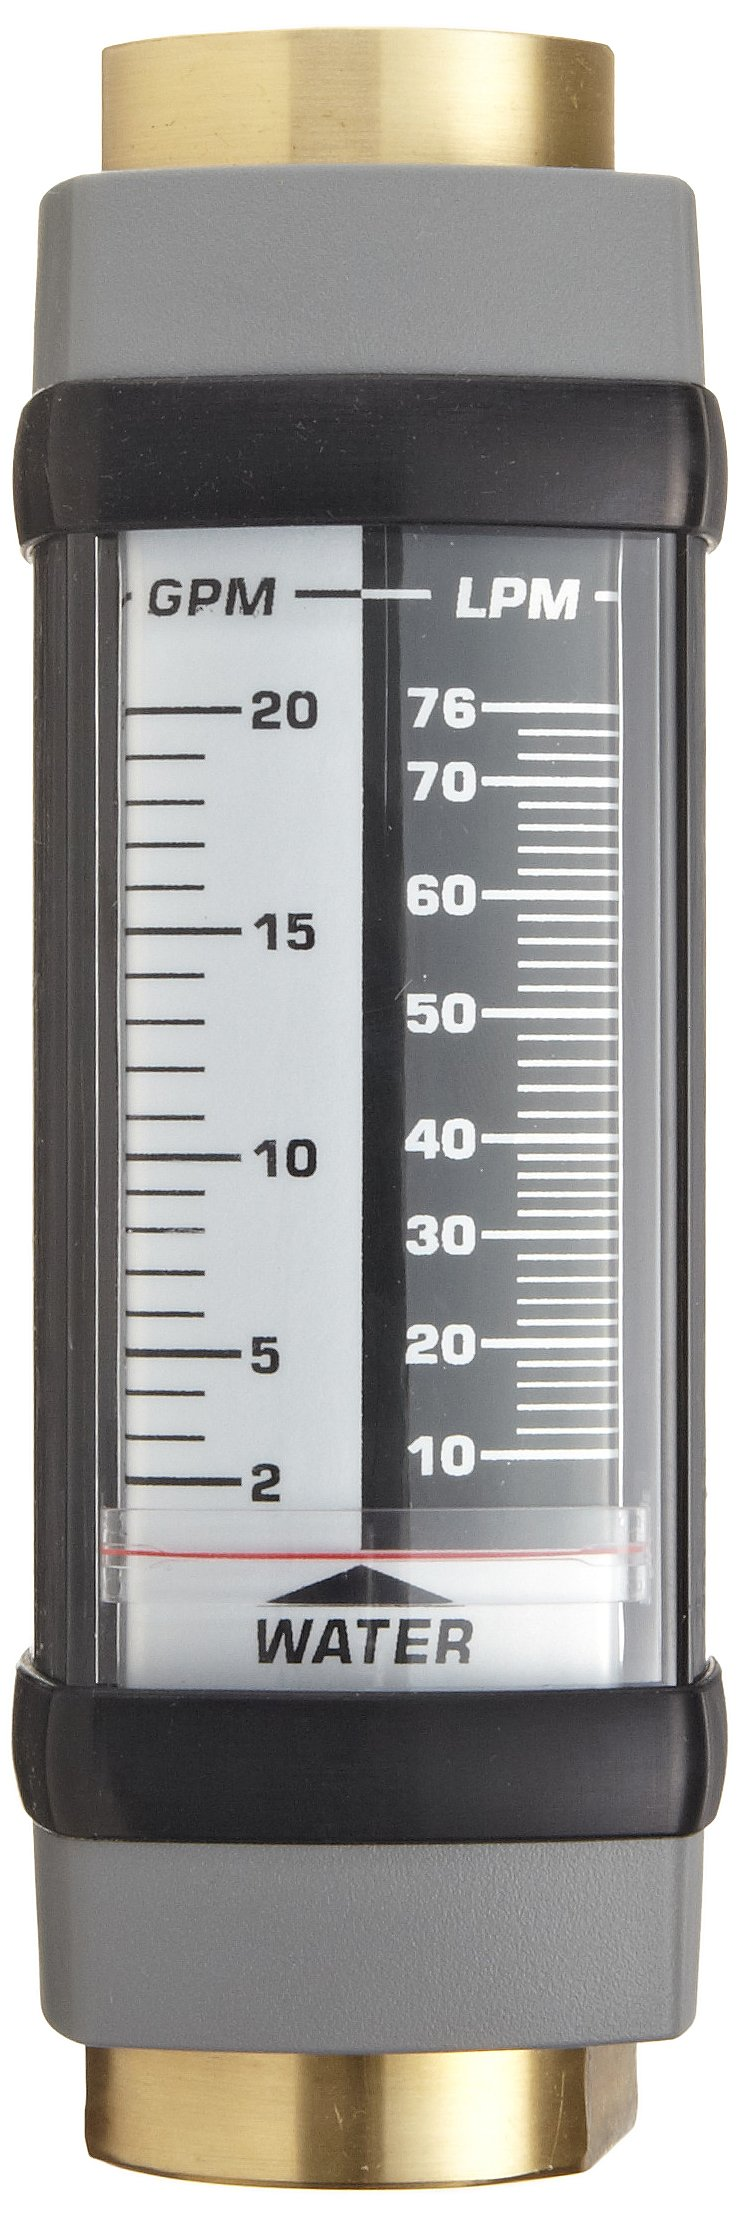 Hedland H605B-010 Flowmeter, Brass, For Use With Water, 1 - 10 gpm Flow Range, 1/2'' NPT Female